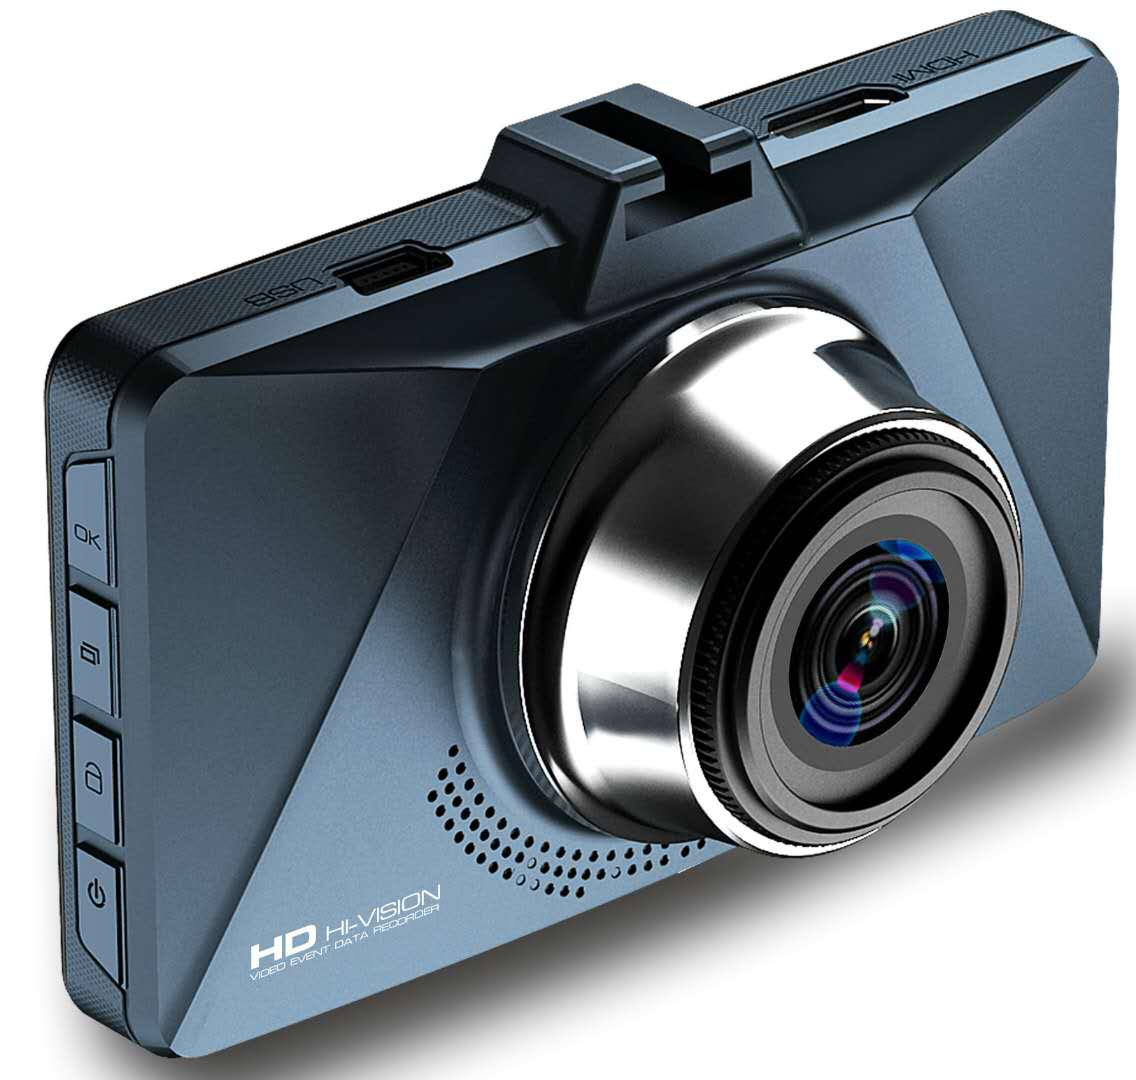 Car Camera 3.0 inch Full HD 1080P Car DVR Video Recorder Dash Cam 170 Degree Wide Angle Motion Detection Night Vision